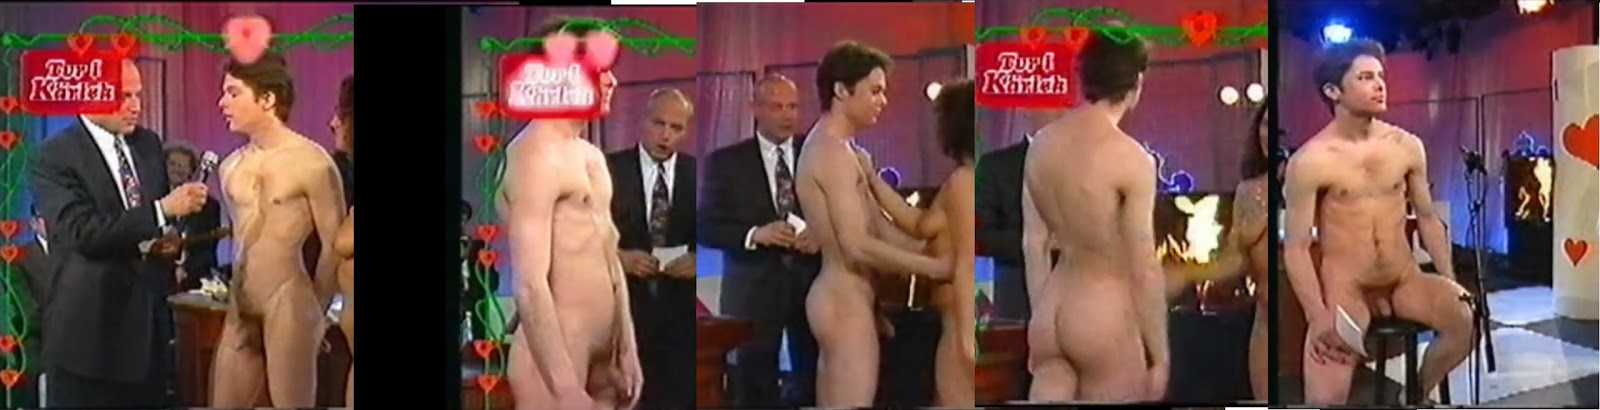 blind date tv naked